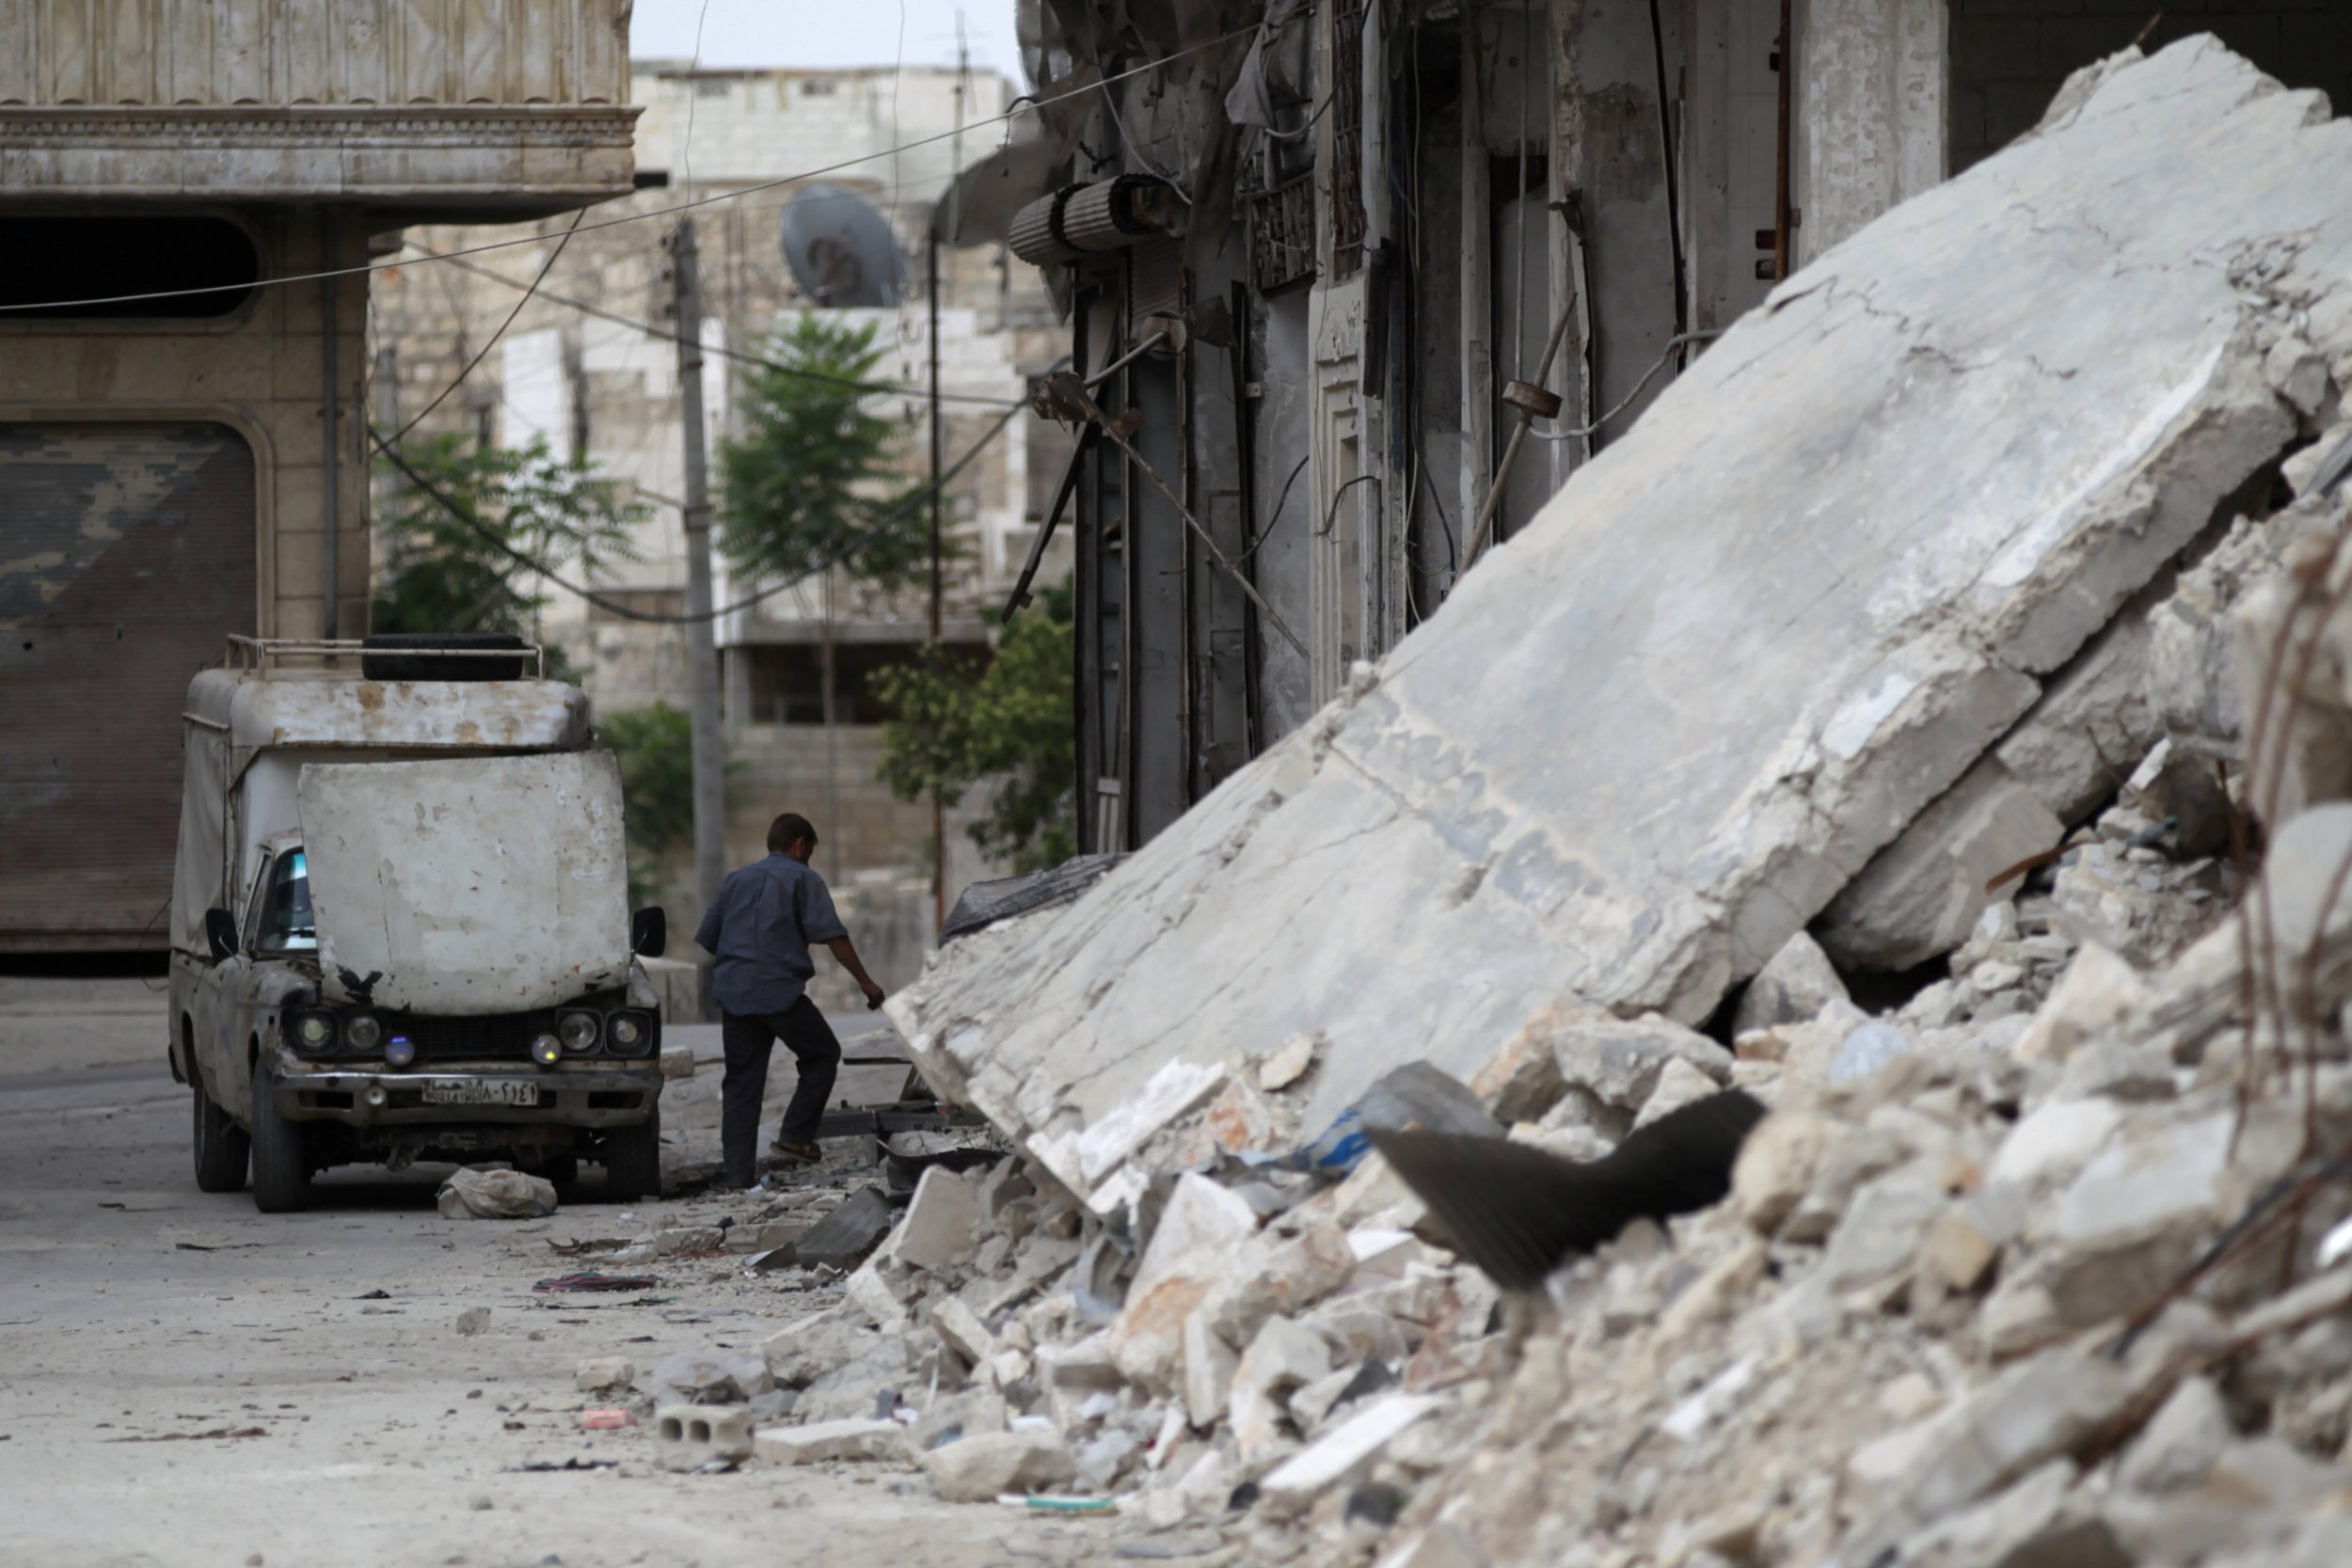 Truck in Syria